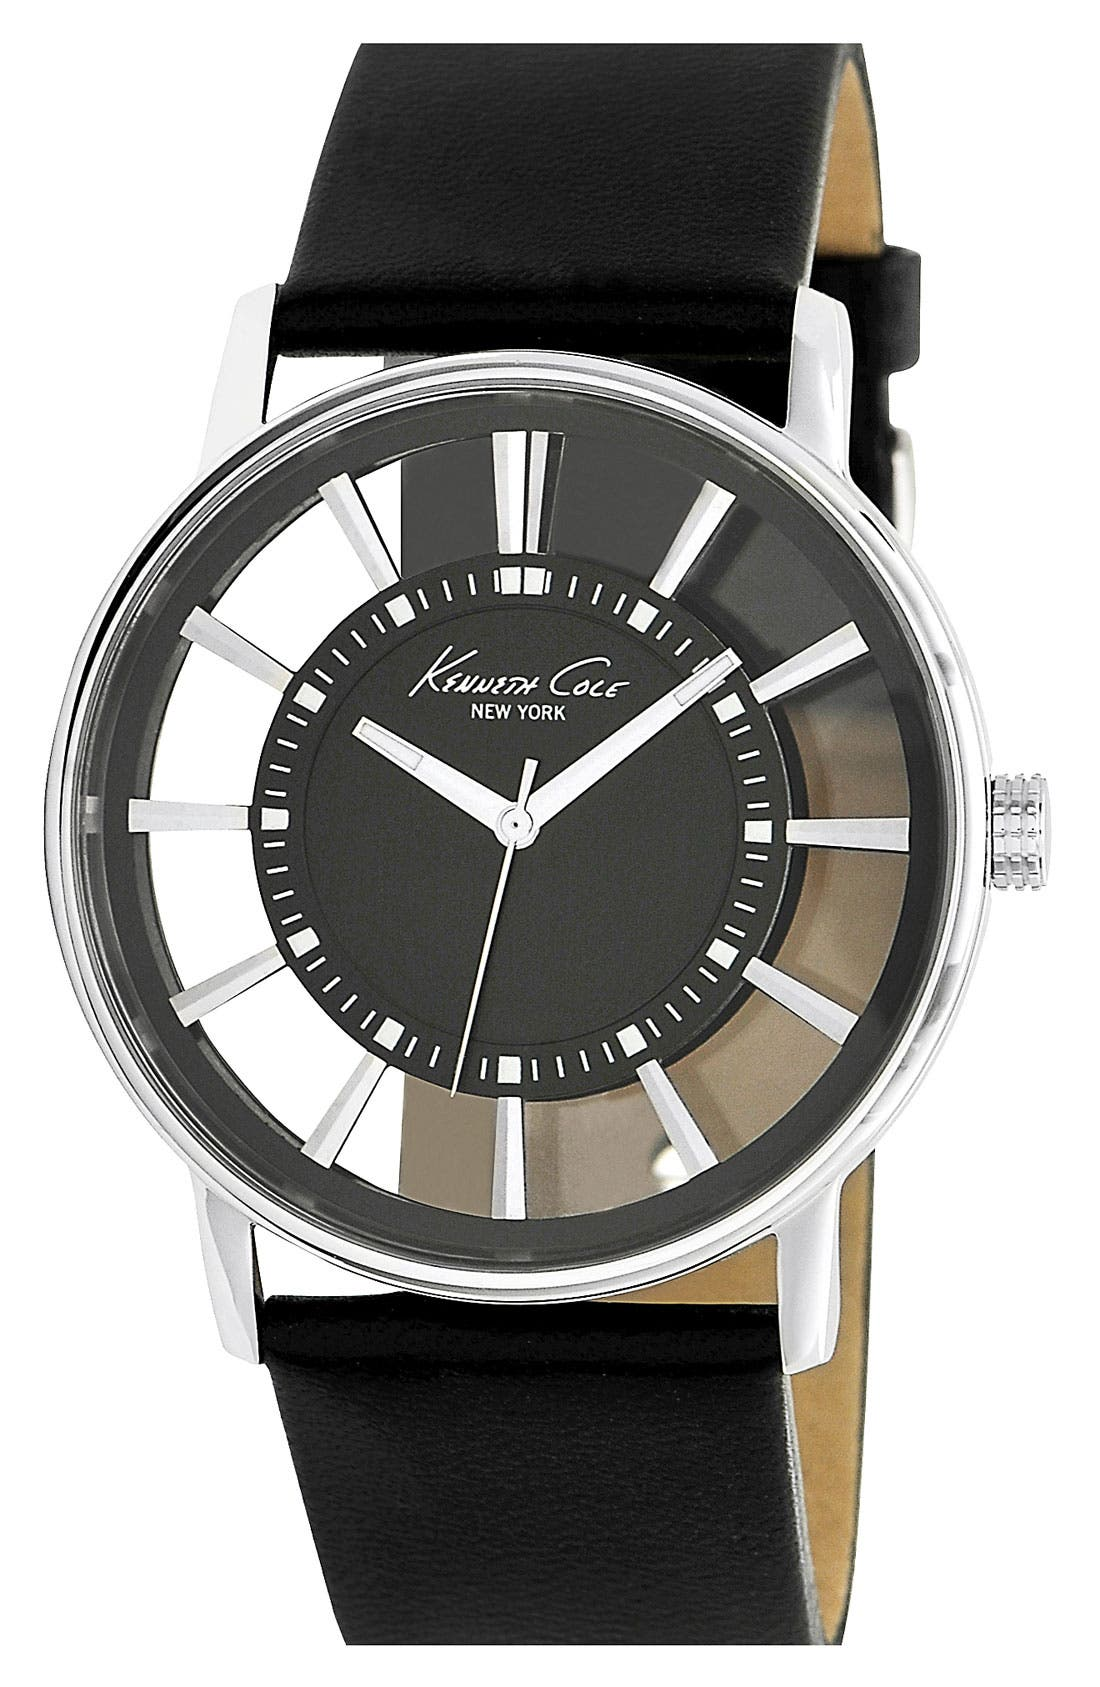 Main Image - ROUND TRANSPARENT DIAL WATCH W/ LEATHER STRAP